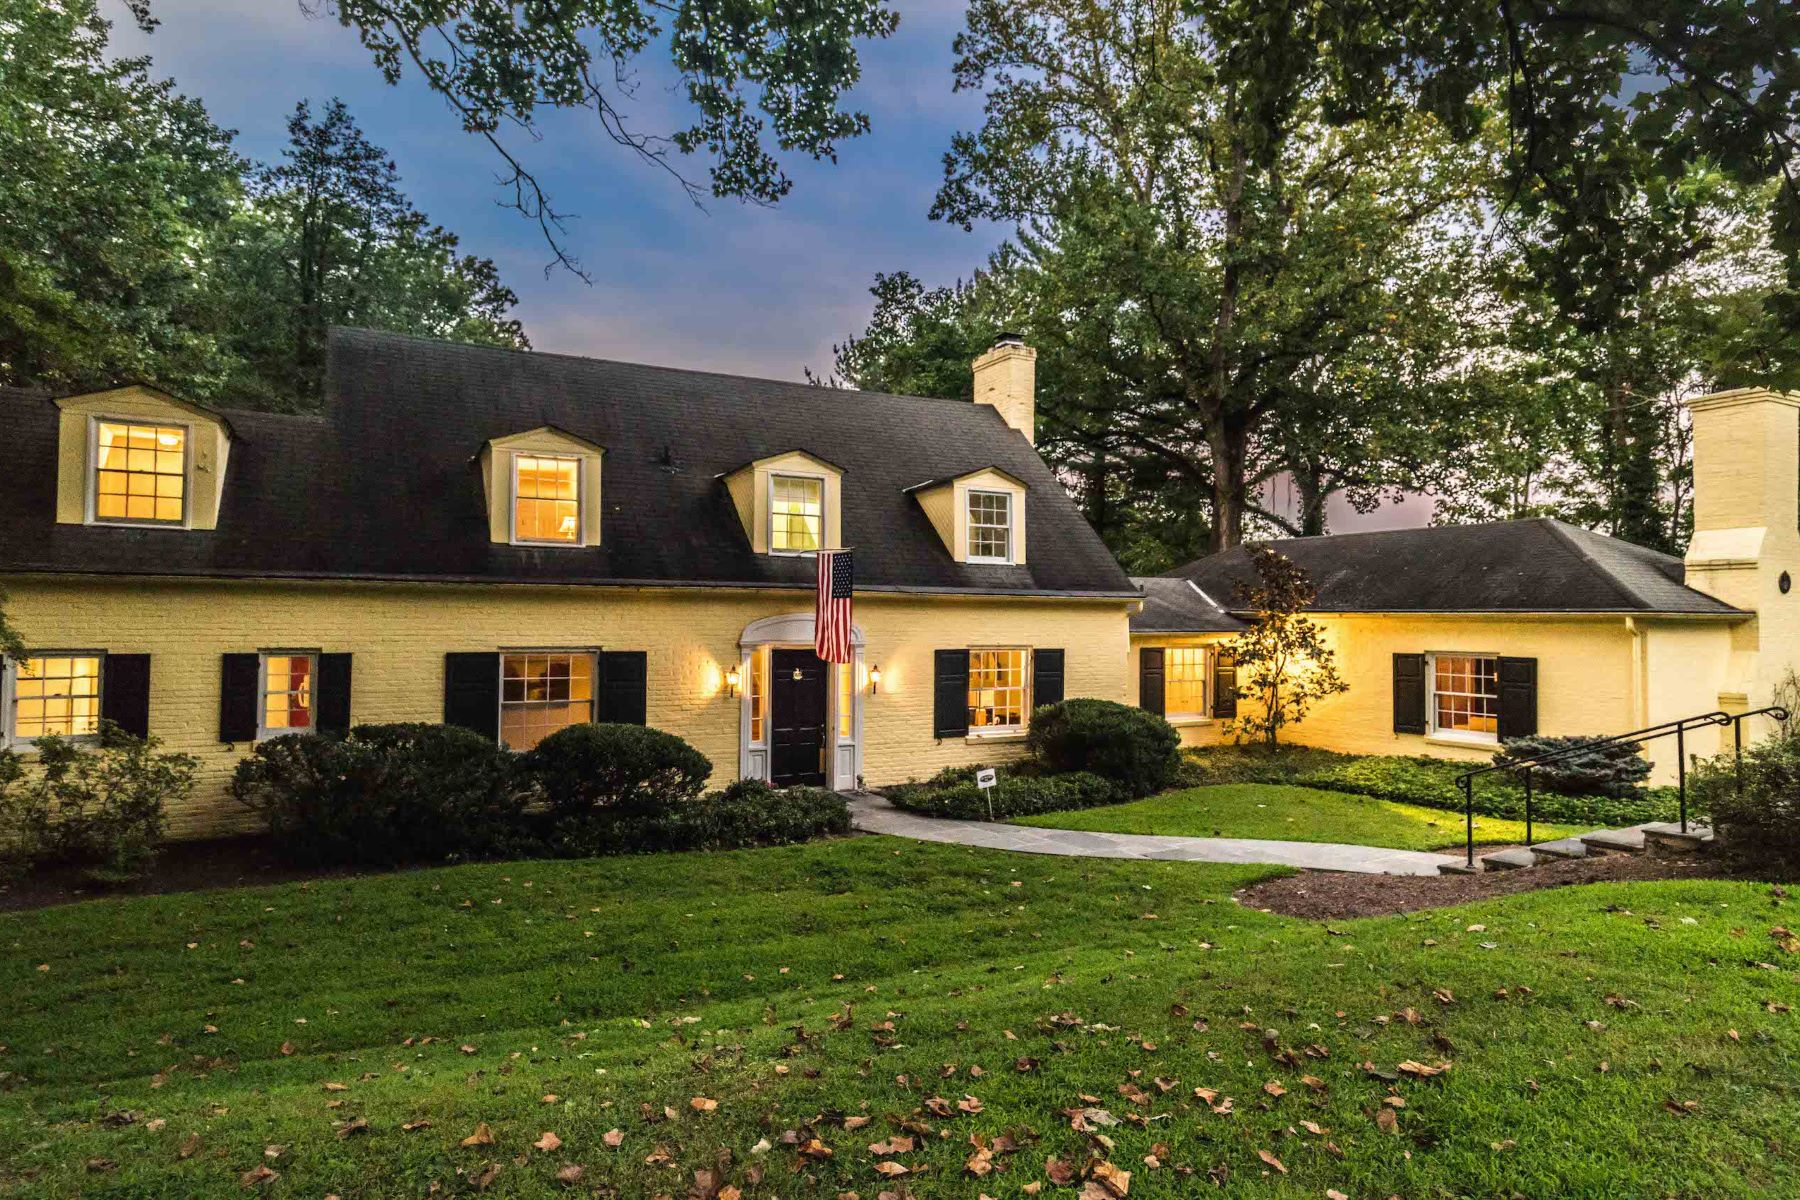 Single Family Homes for Sale at Greenspring Valley 222 Hopkins Lane Owings Mills, Maryland 21117 United States